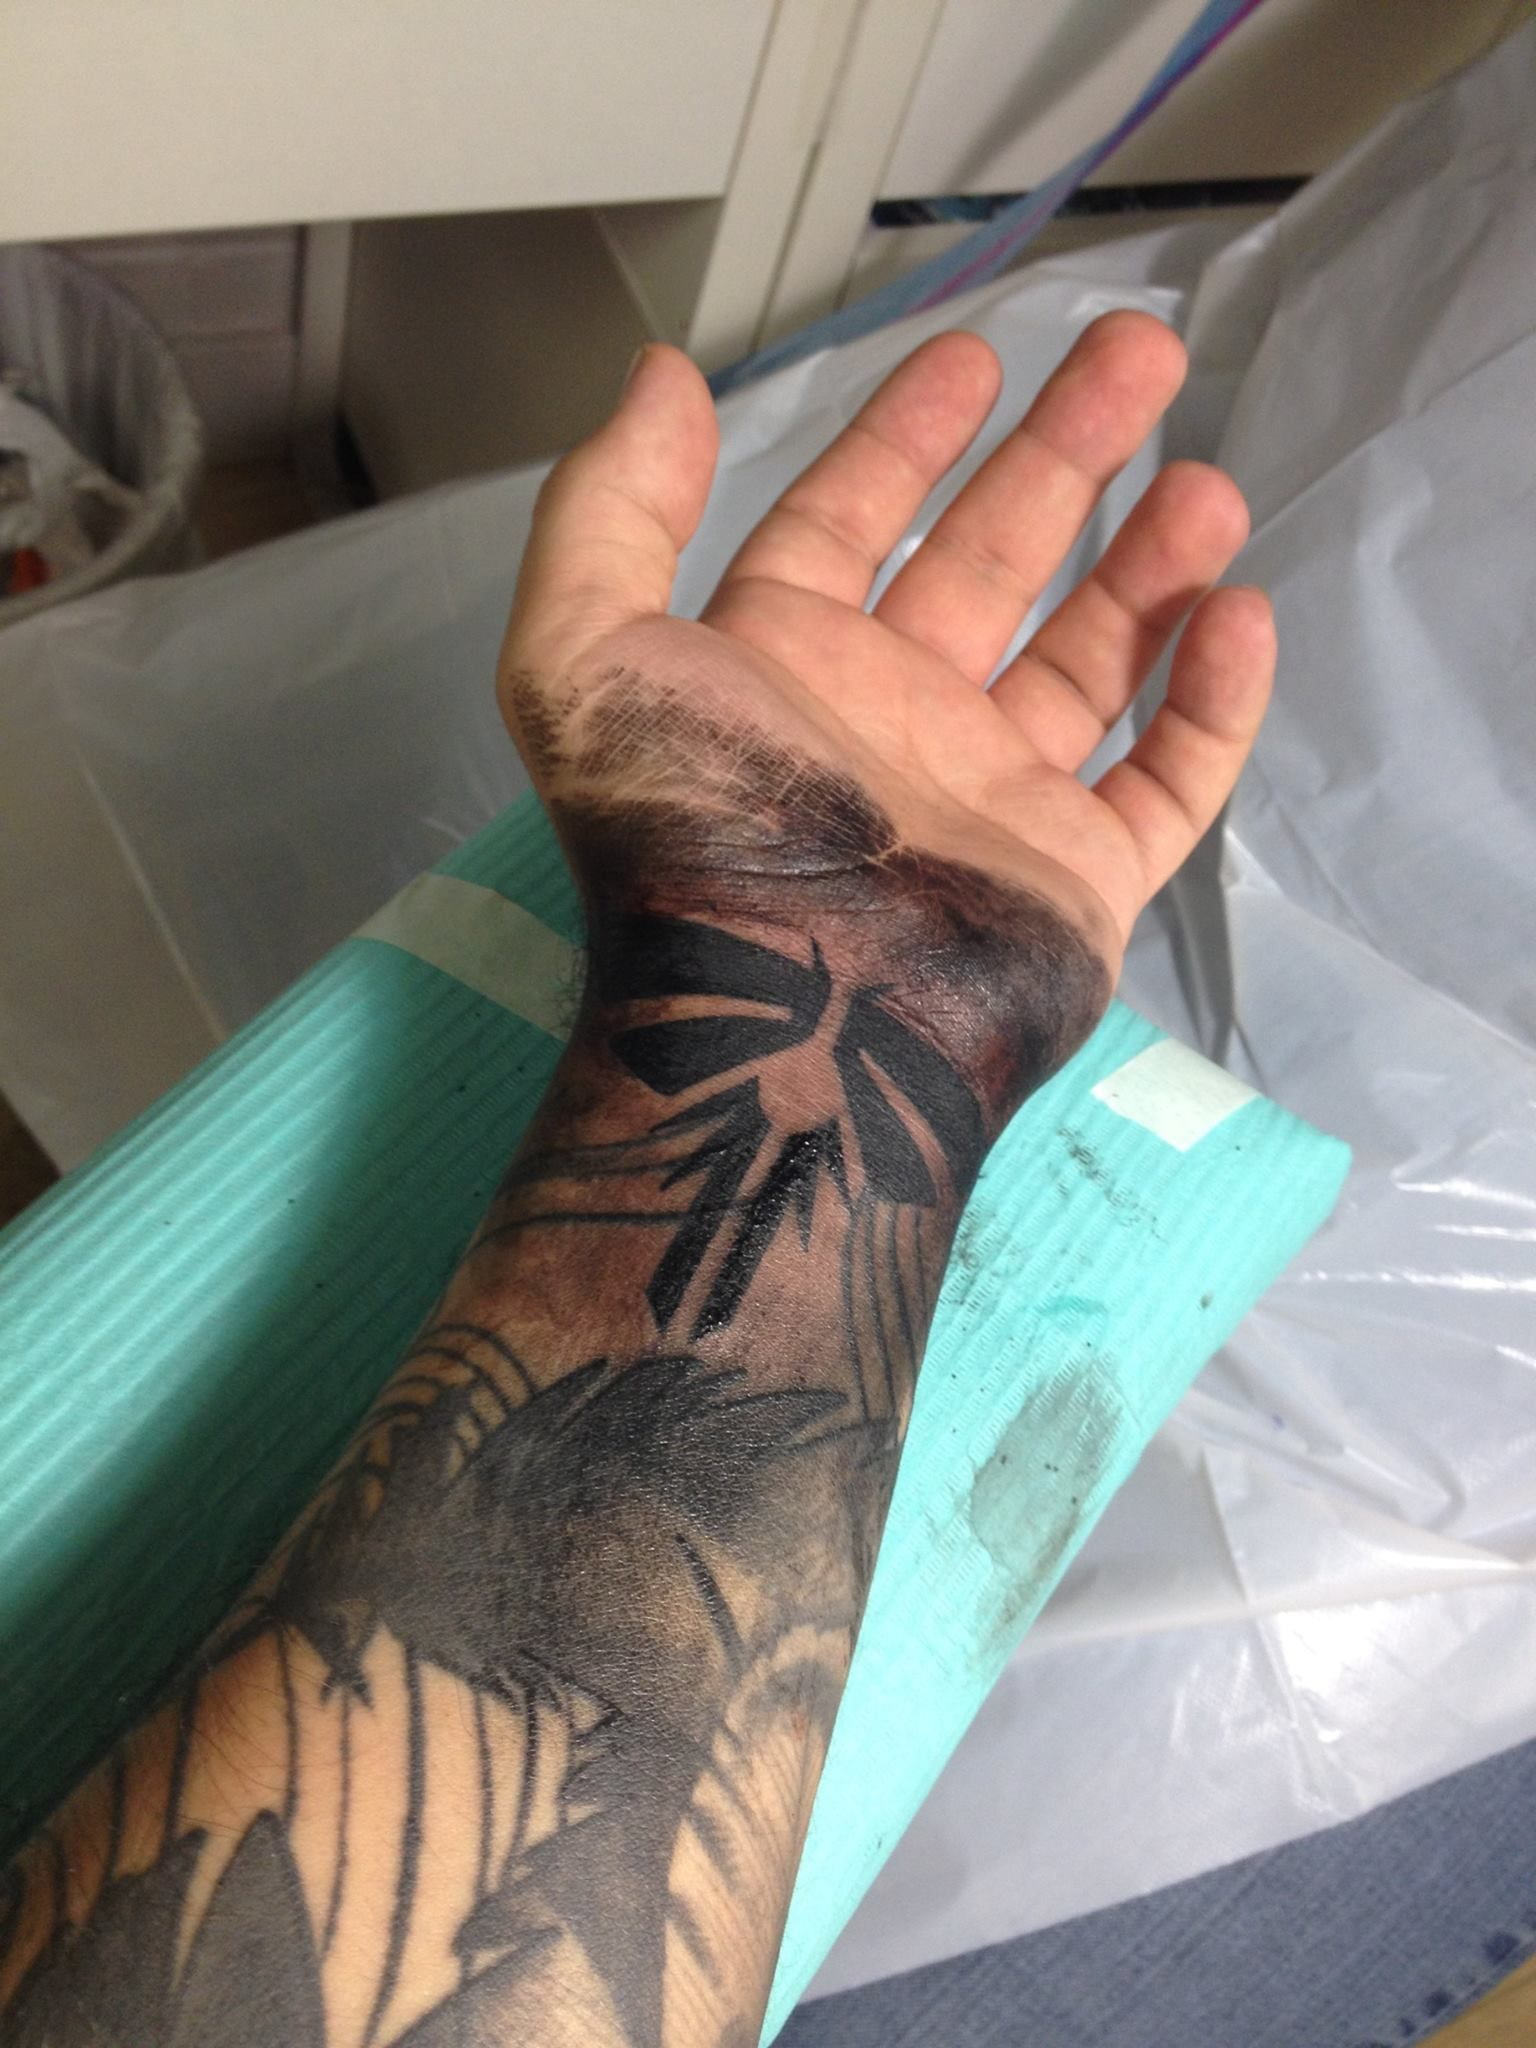 The o jays butterfly tattoos and clothes on pinterest - The Last Of Us Firefly Tattoo